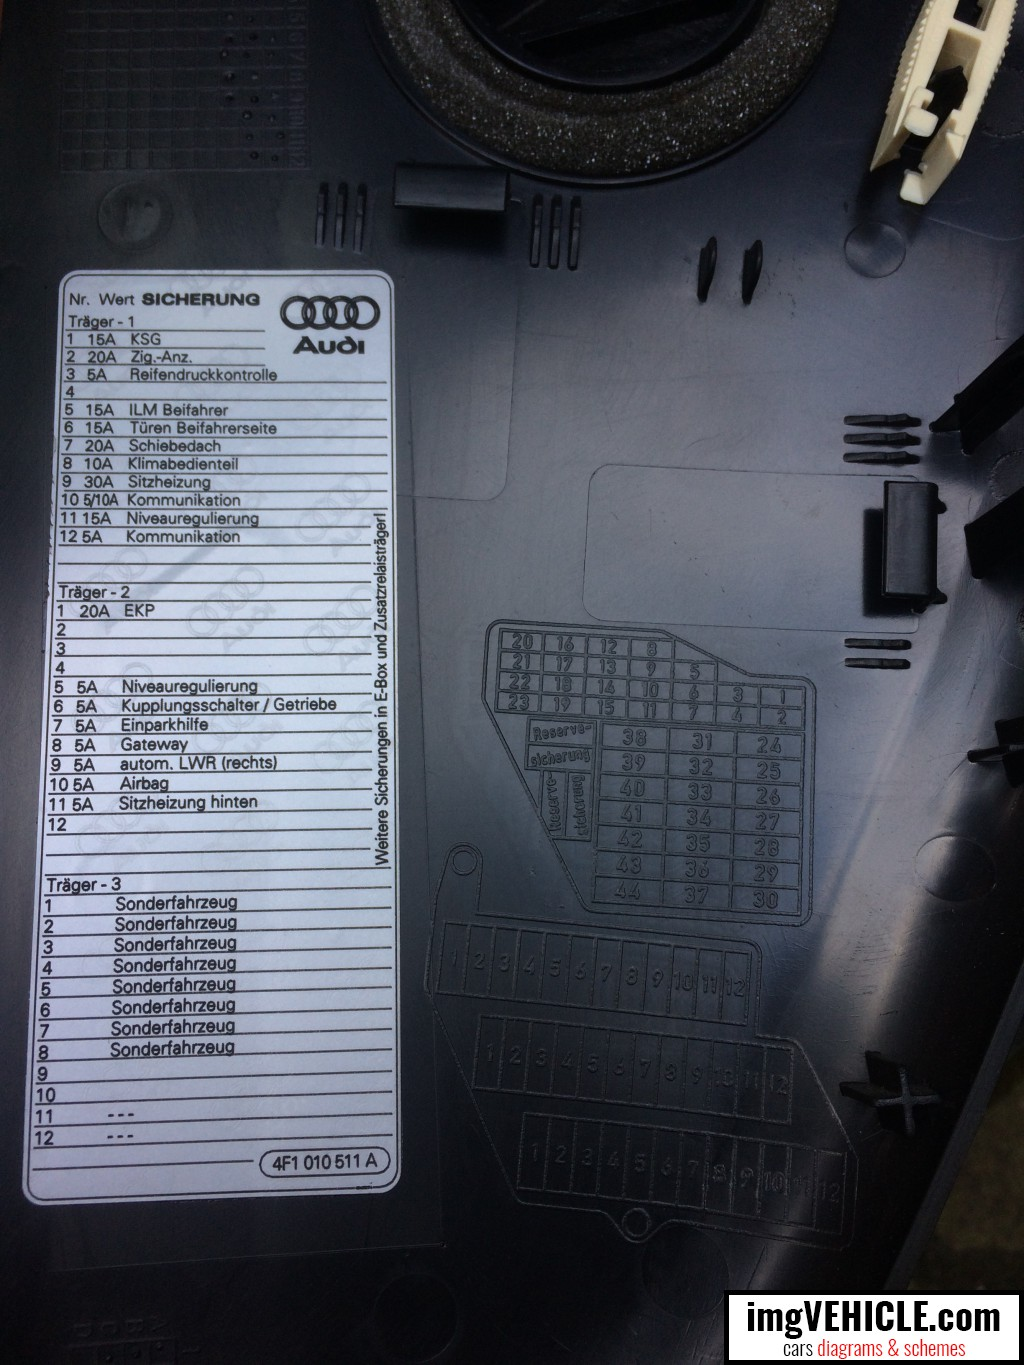 Audi A6 Fuse Box 2006 Wiring Diagram Schematics Chrysler 300 2 7 C6 Diagrams Schemes Imgvehicle Com Pontiac Grand Prix